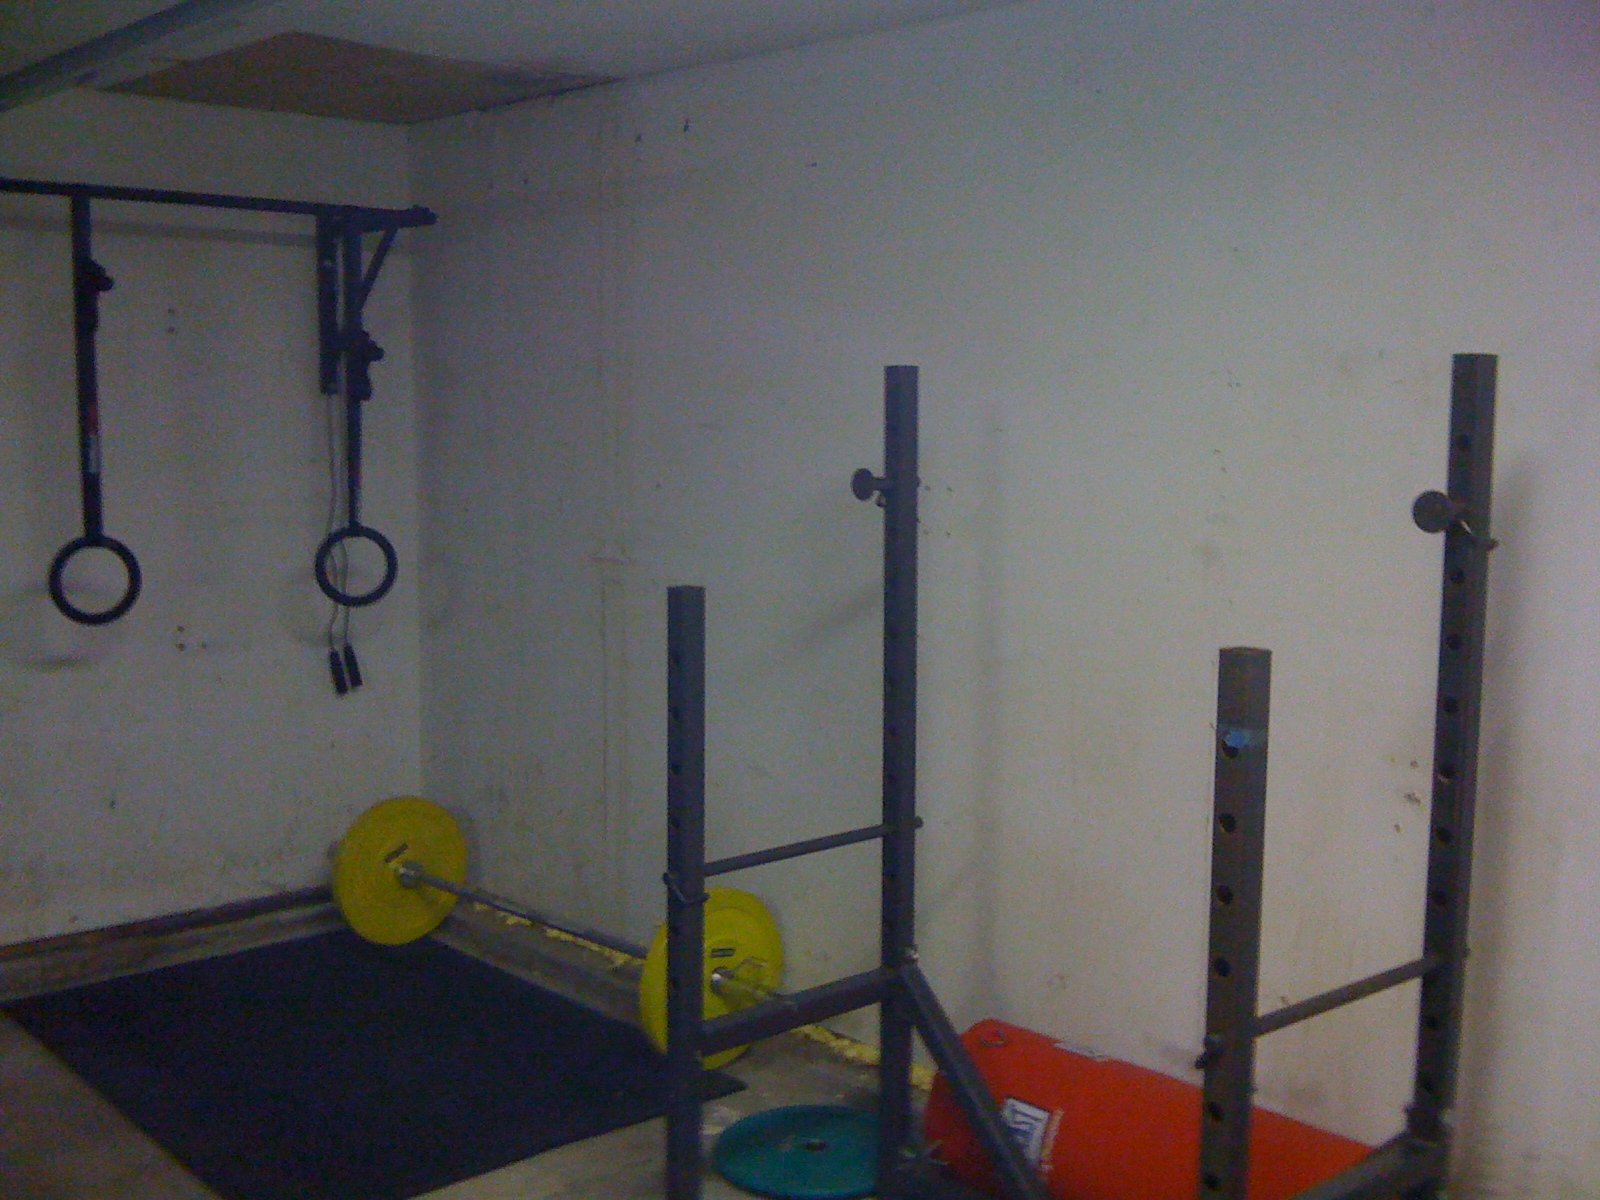 The garage gym store email address photos phone